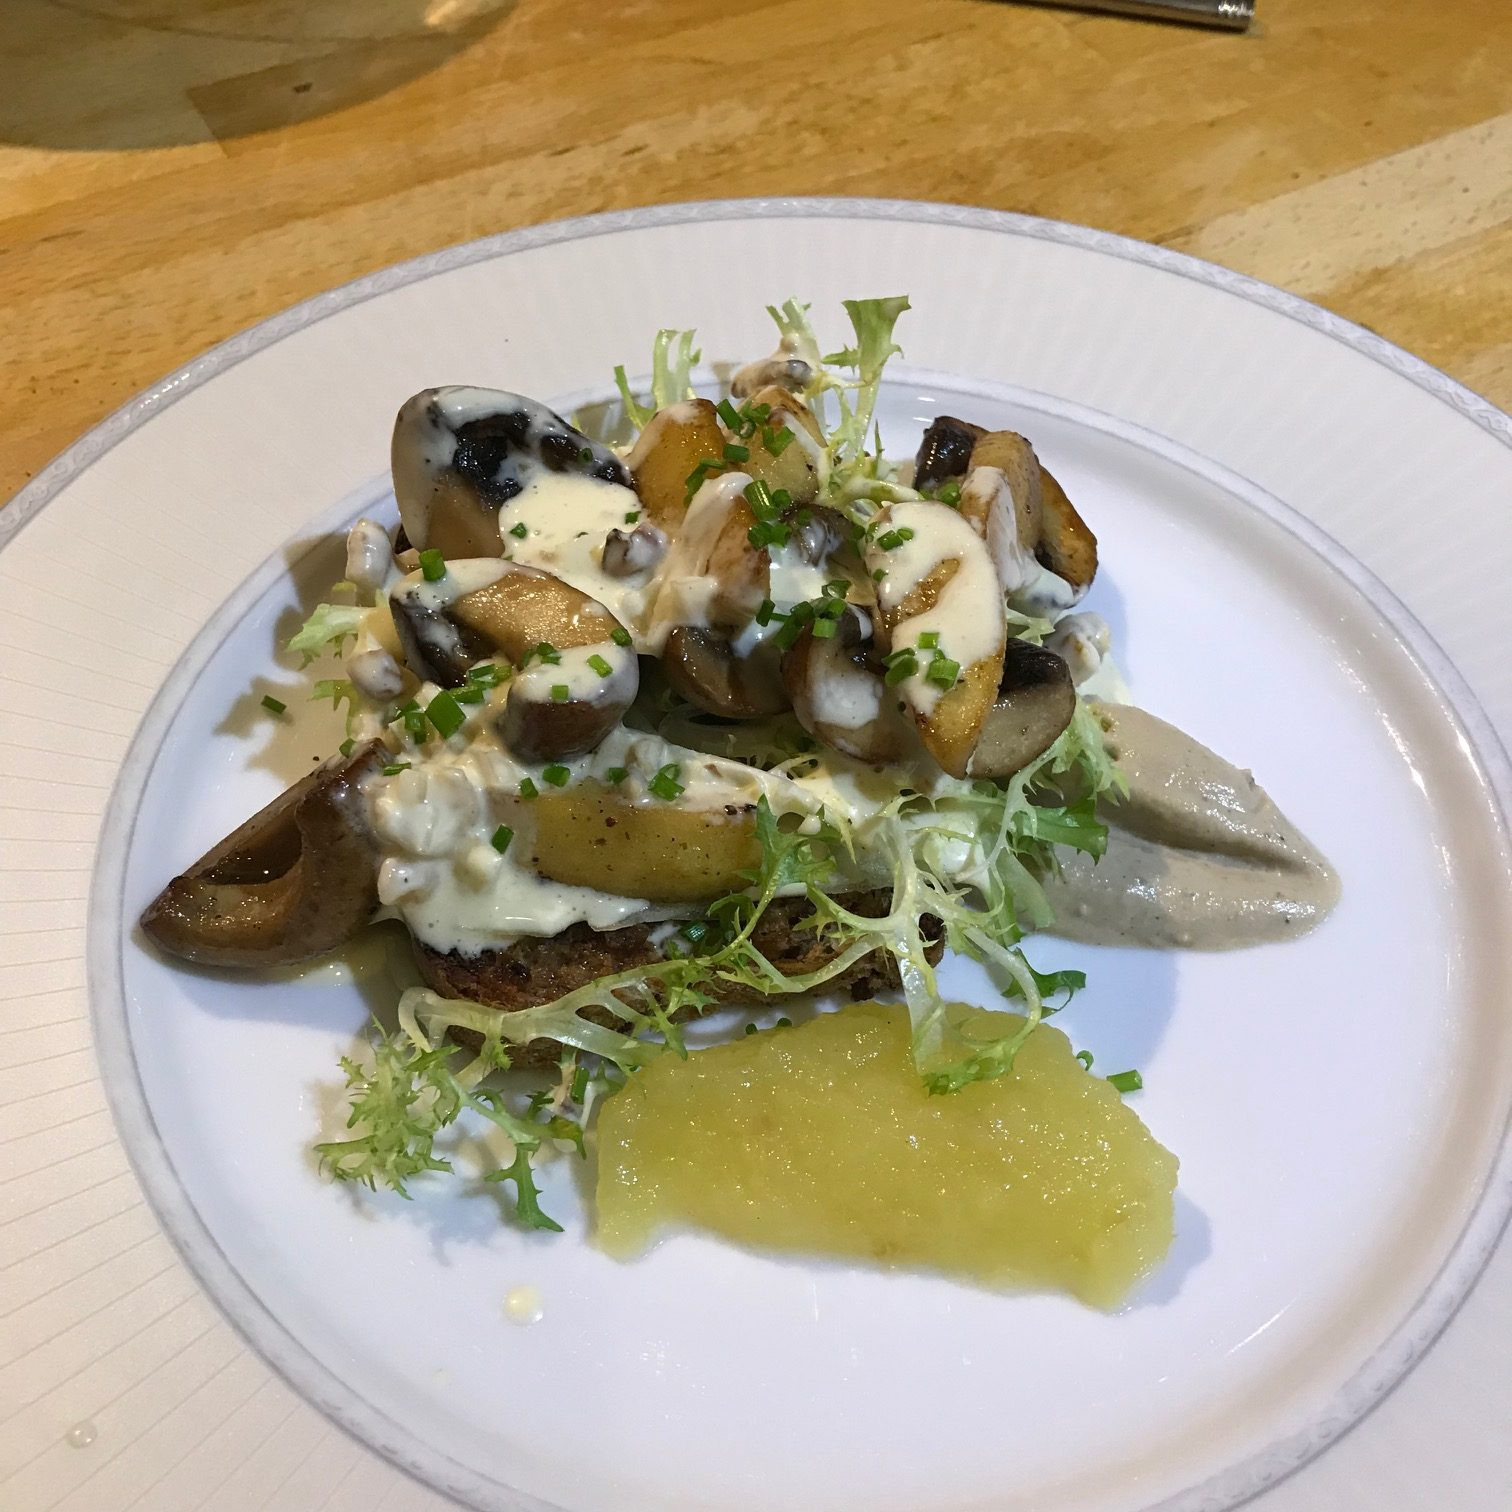 20190911 - Chestnut Mushrooms with Apples on Walnut Toasts with a Dijon Mustard Dressing